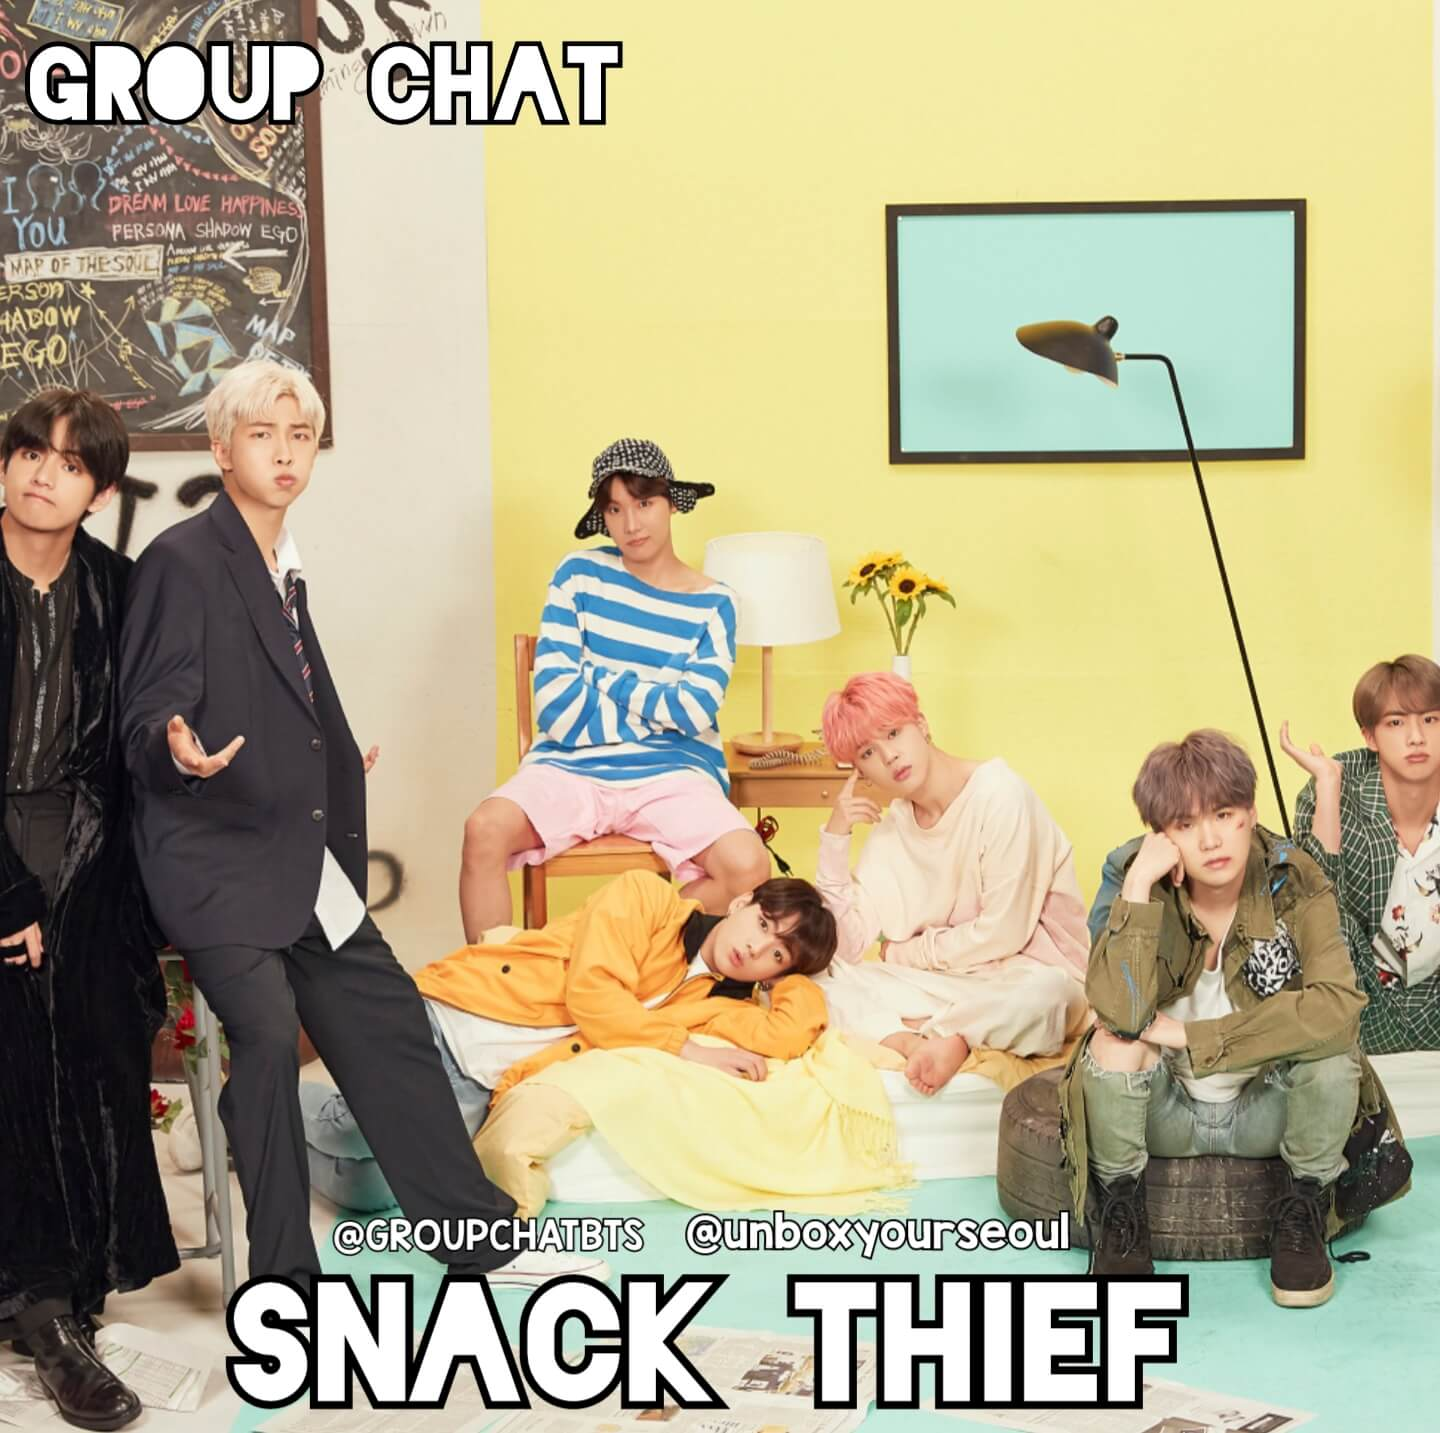 bts imagine groupcaht snack thief